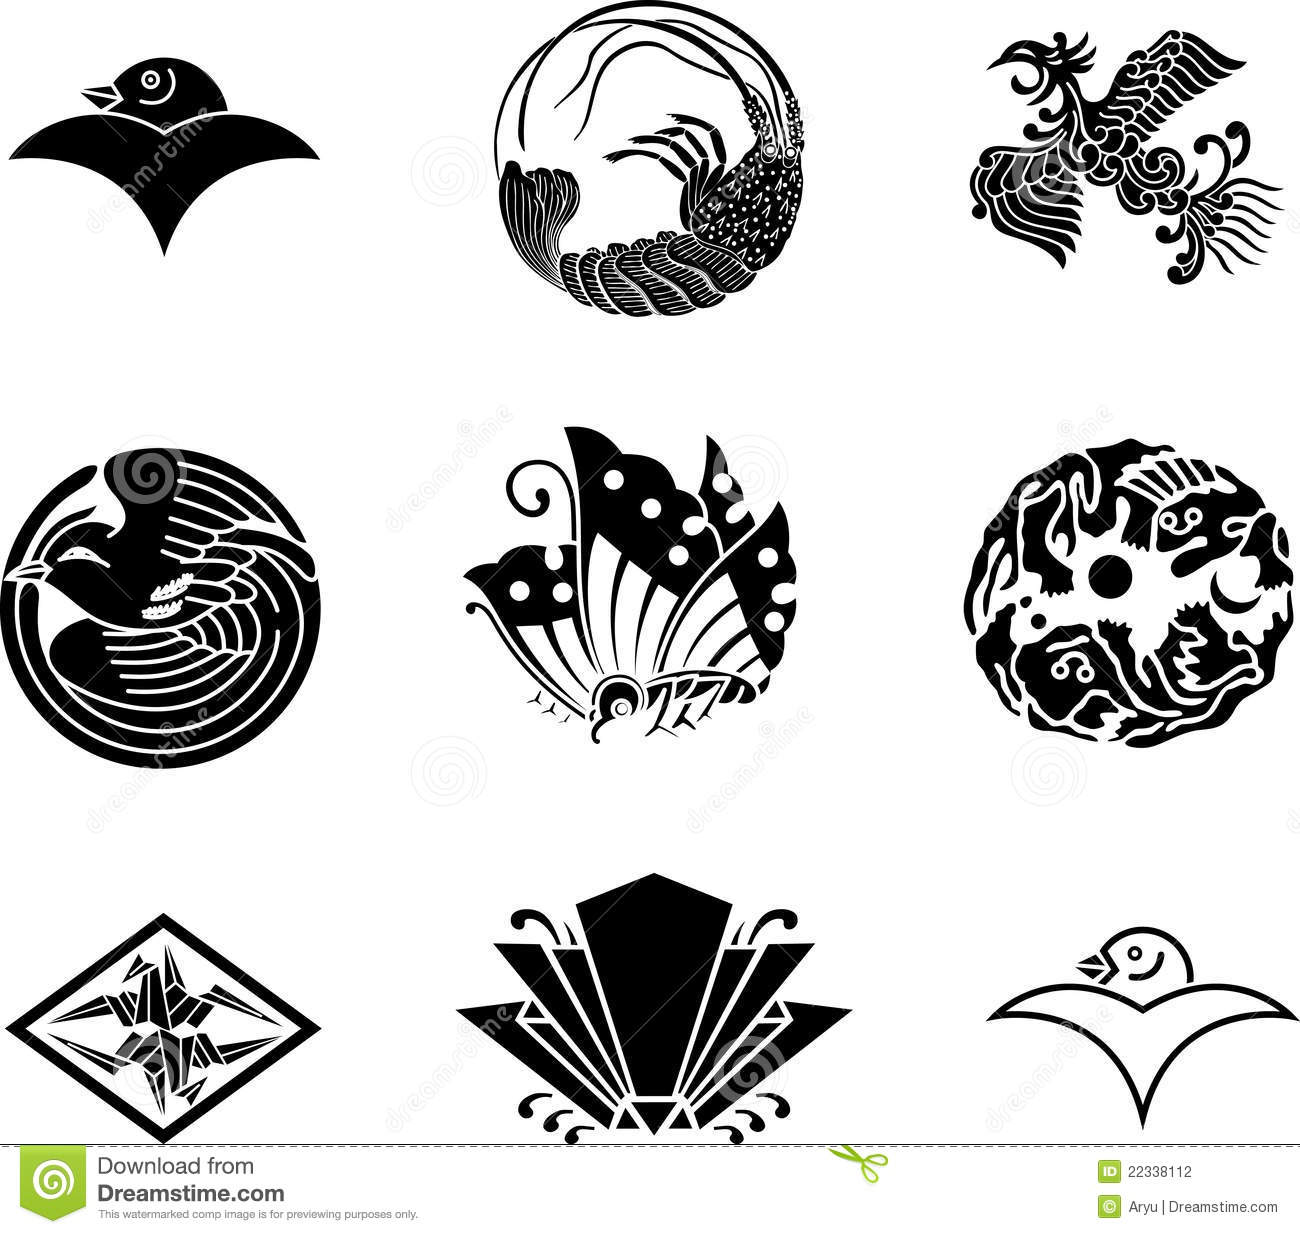 Japanese family crests stock vector illustration of japan 22338112 japanese family crests biocorpaavc